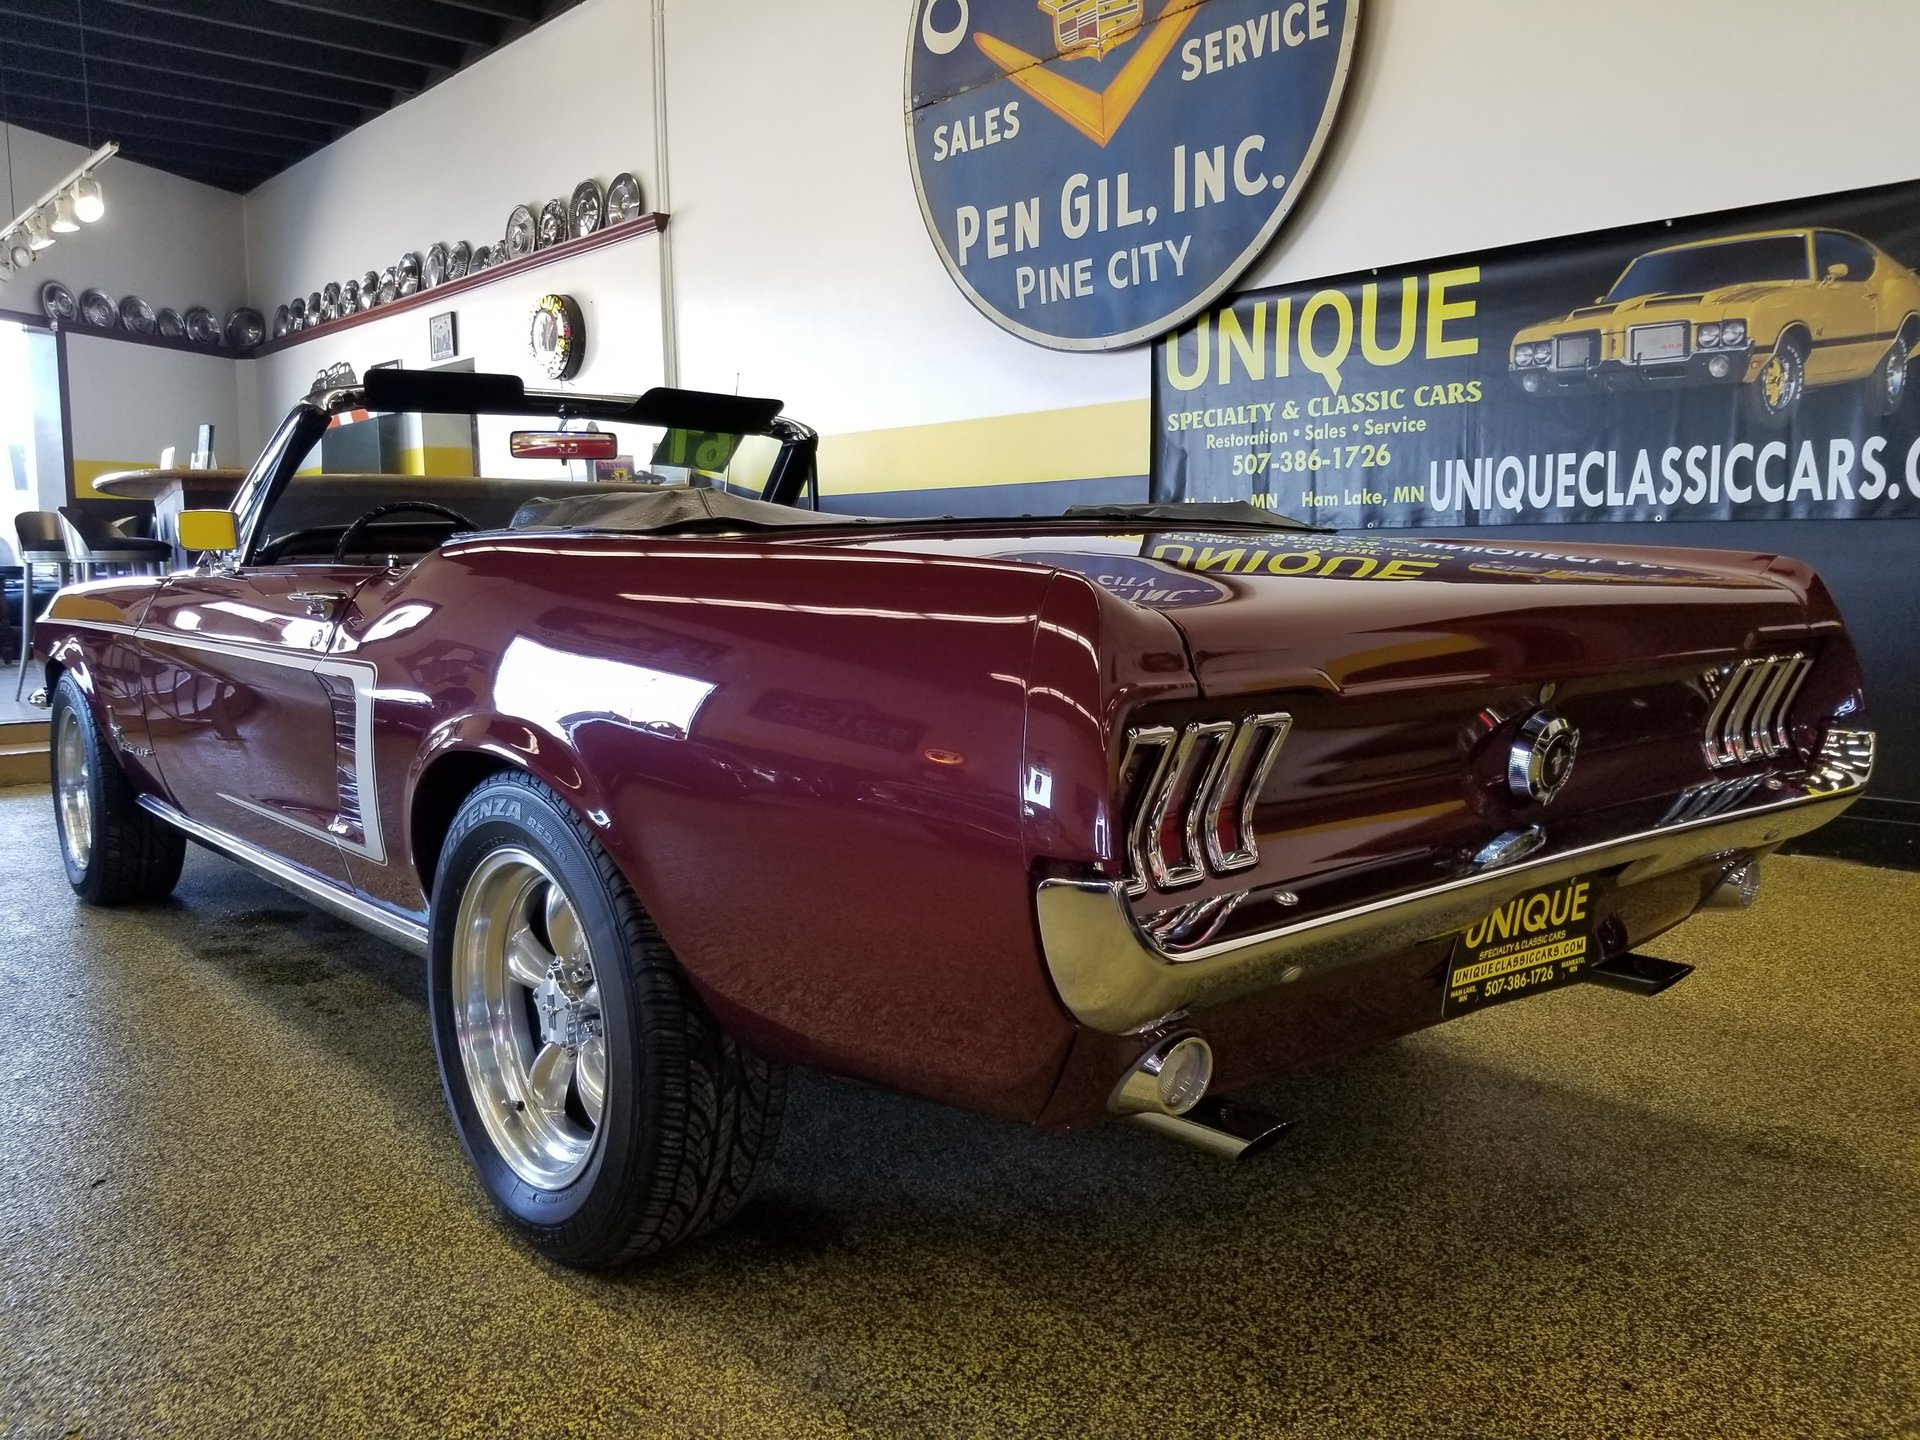 1967 Ford Mustang Convertible for sale #83378 | MCG